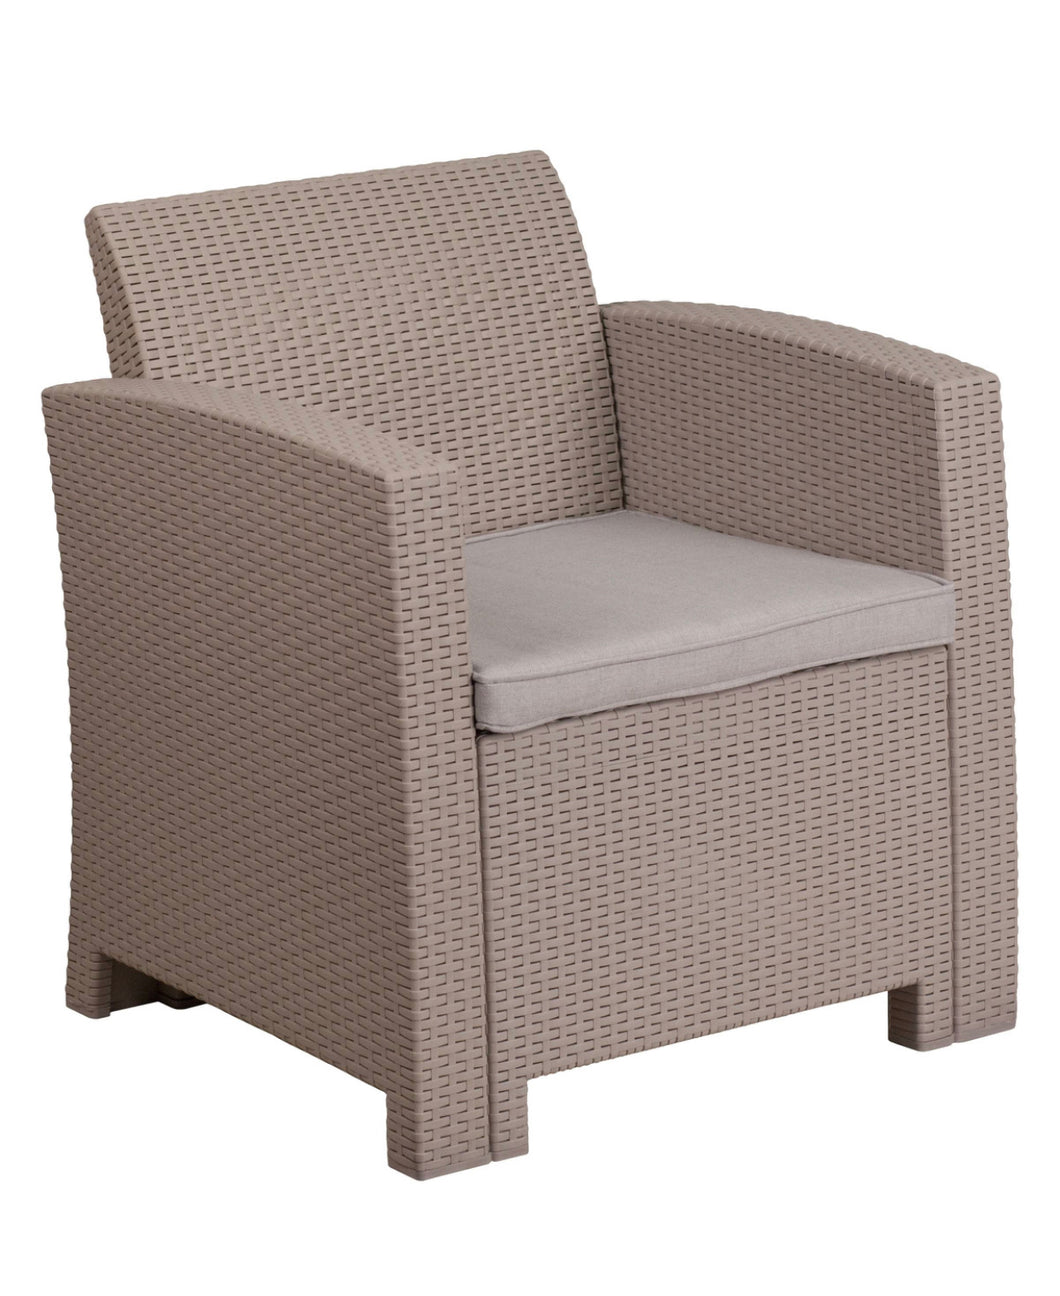 SET OF 2 Outdoor Resin Rattan Chairs  (1559-2 boxes)